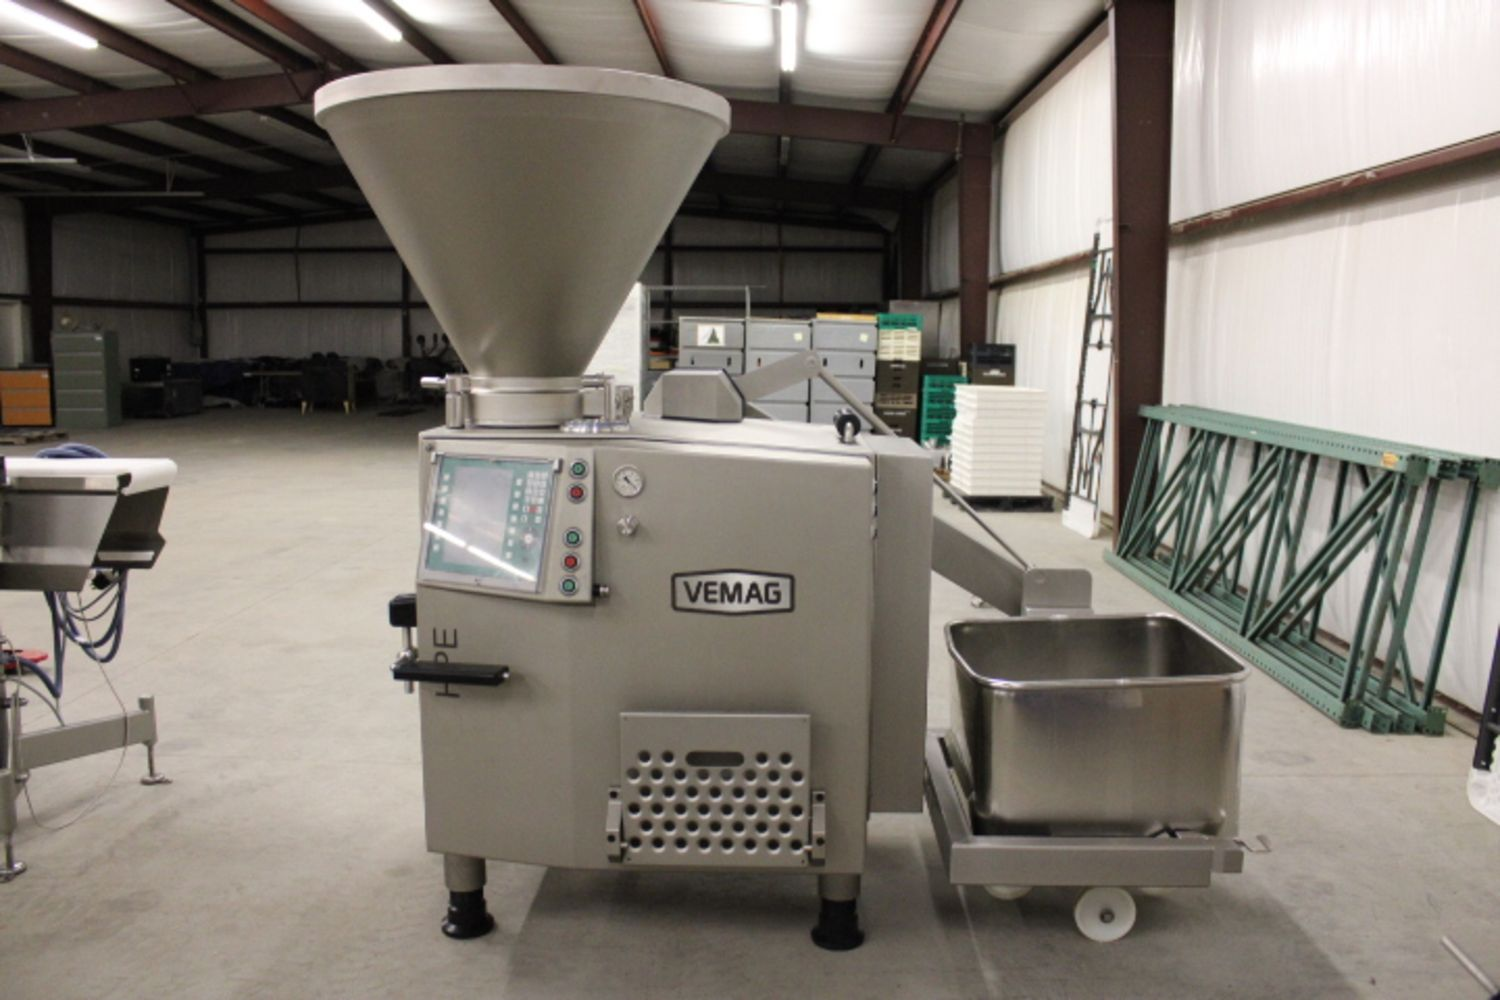 Like New 2019 Vemag HP25E Vacuum Stuffer, MMP223 Portioner & Vemag Process Check, 2016 IJ White Ambient Spiral and Excess Assets from Koch Foods